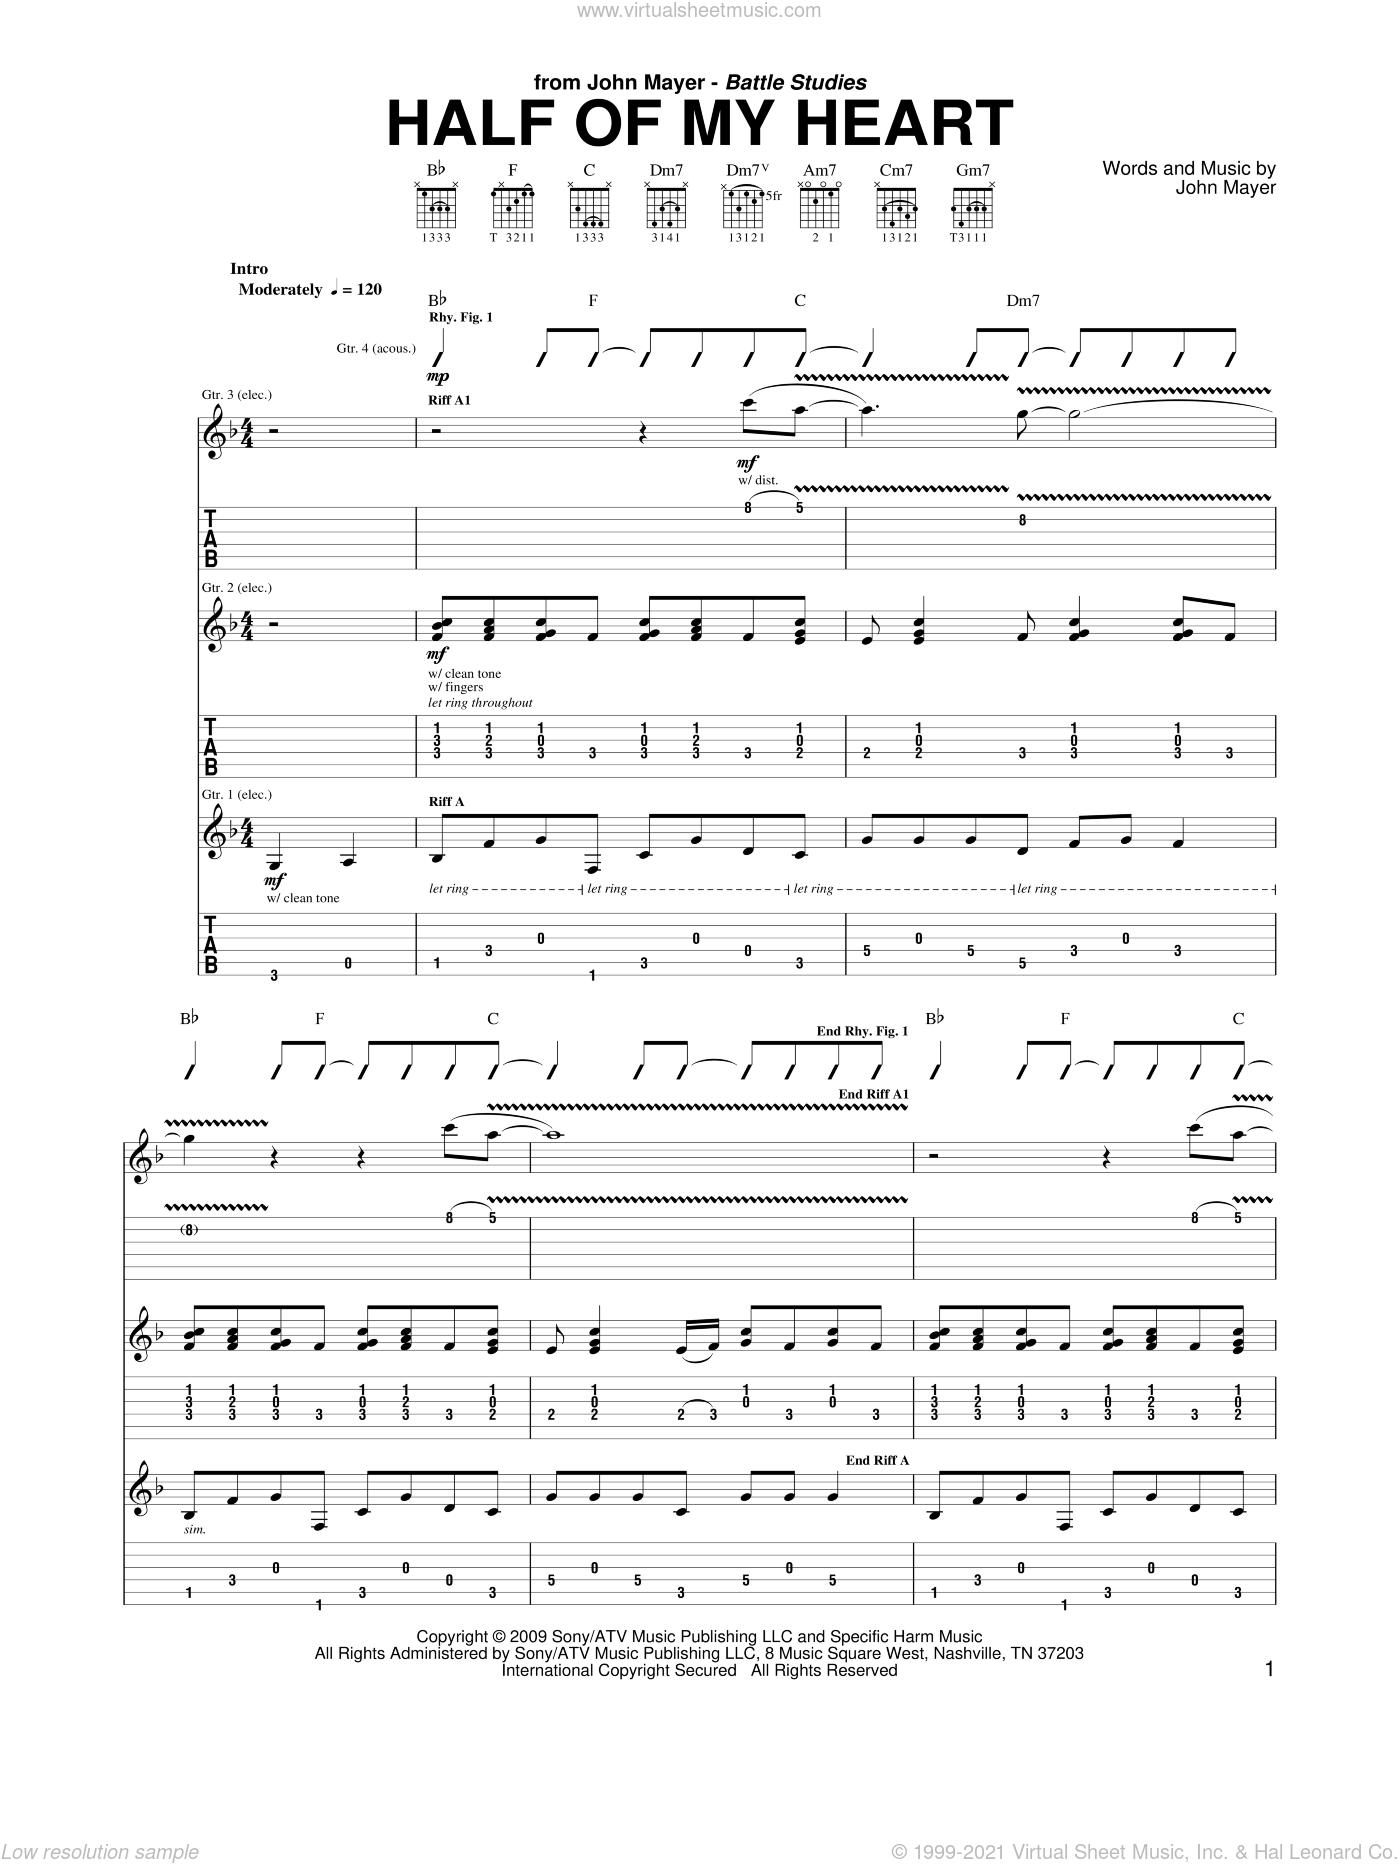 Half Of My Heart sheet music for guitar (tablature) by John Mayer featuring Taylor Swift, Taylor Swift and John Mayer, intermediate. Score Image Preview.